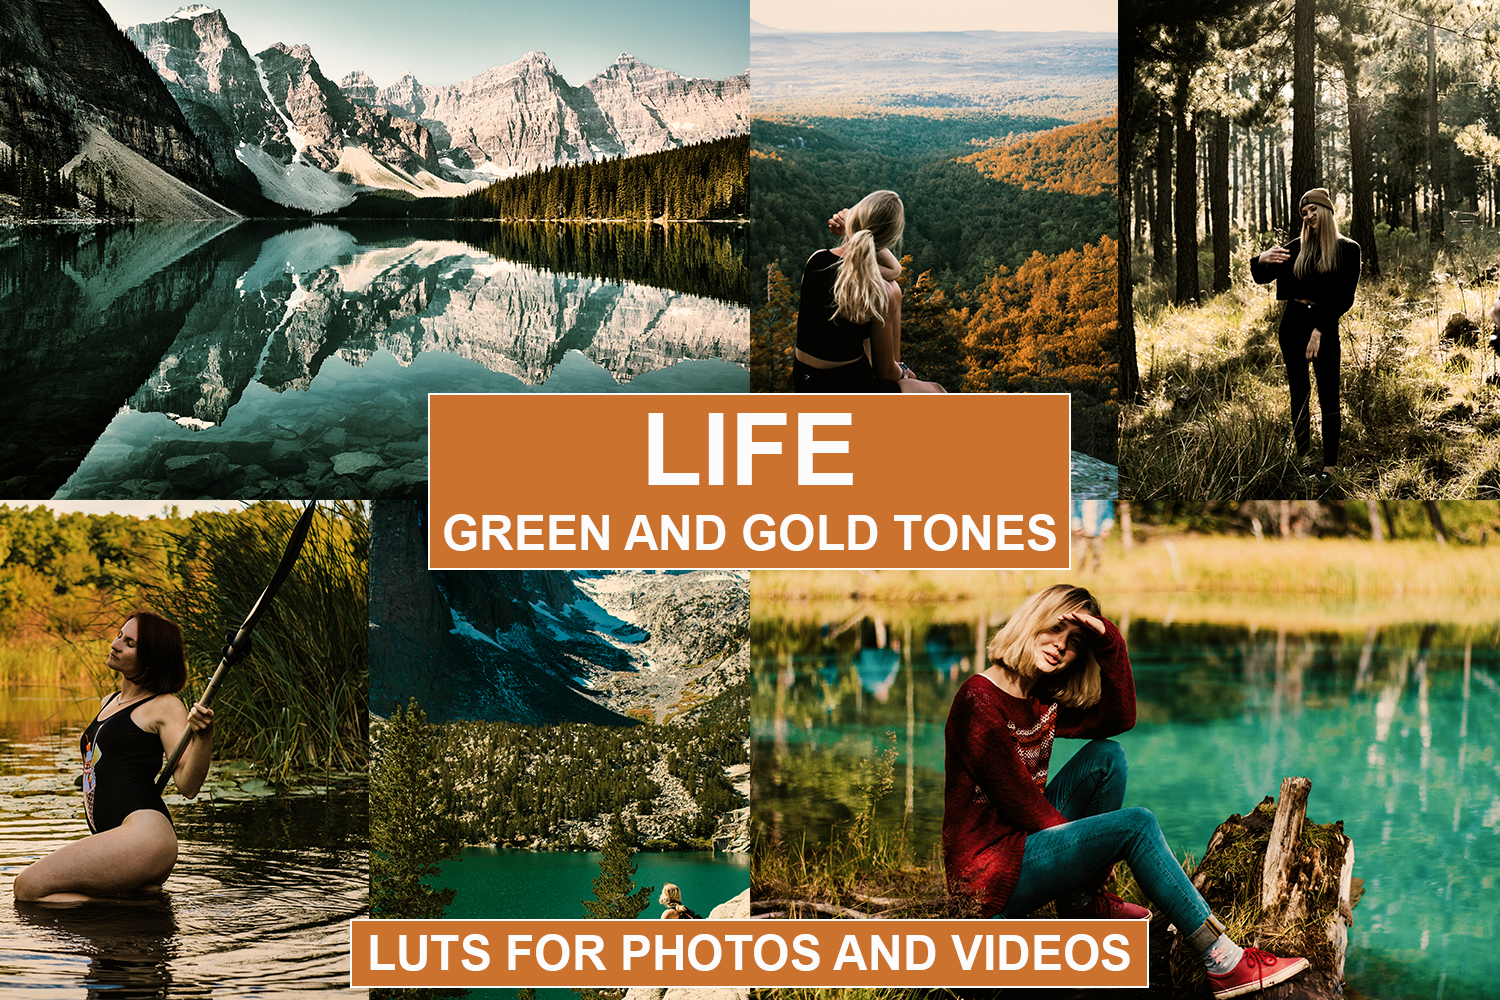 CINEMATIC Cocoa Green Film LUTS PACK for Videos / Moody / Travel - Untitled 1 61 -